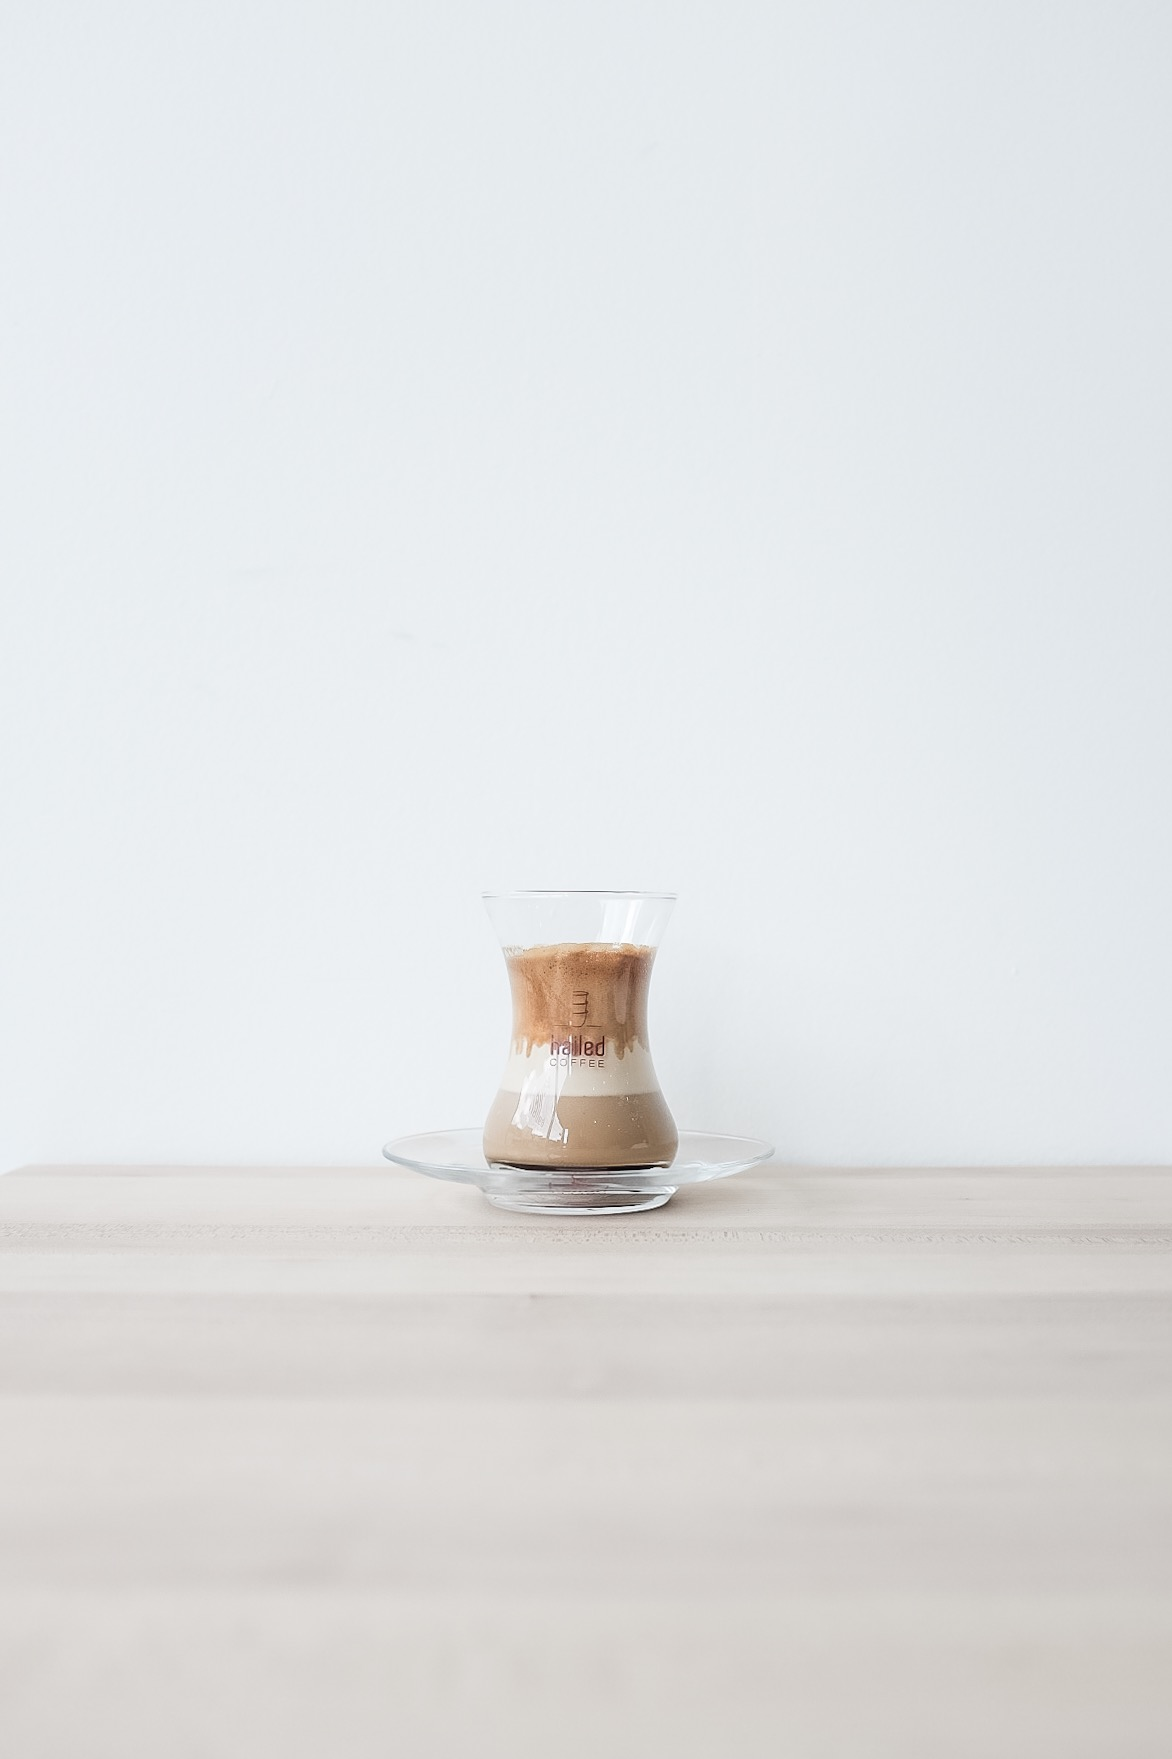 The cortado here is considered one of their signature coffees.